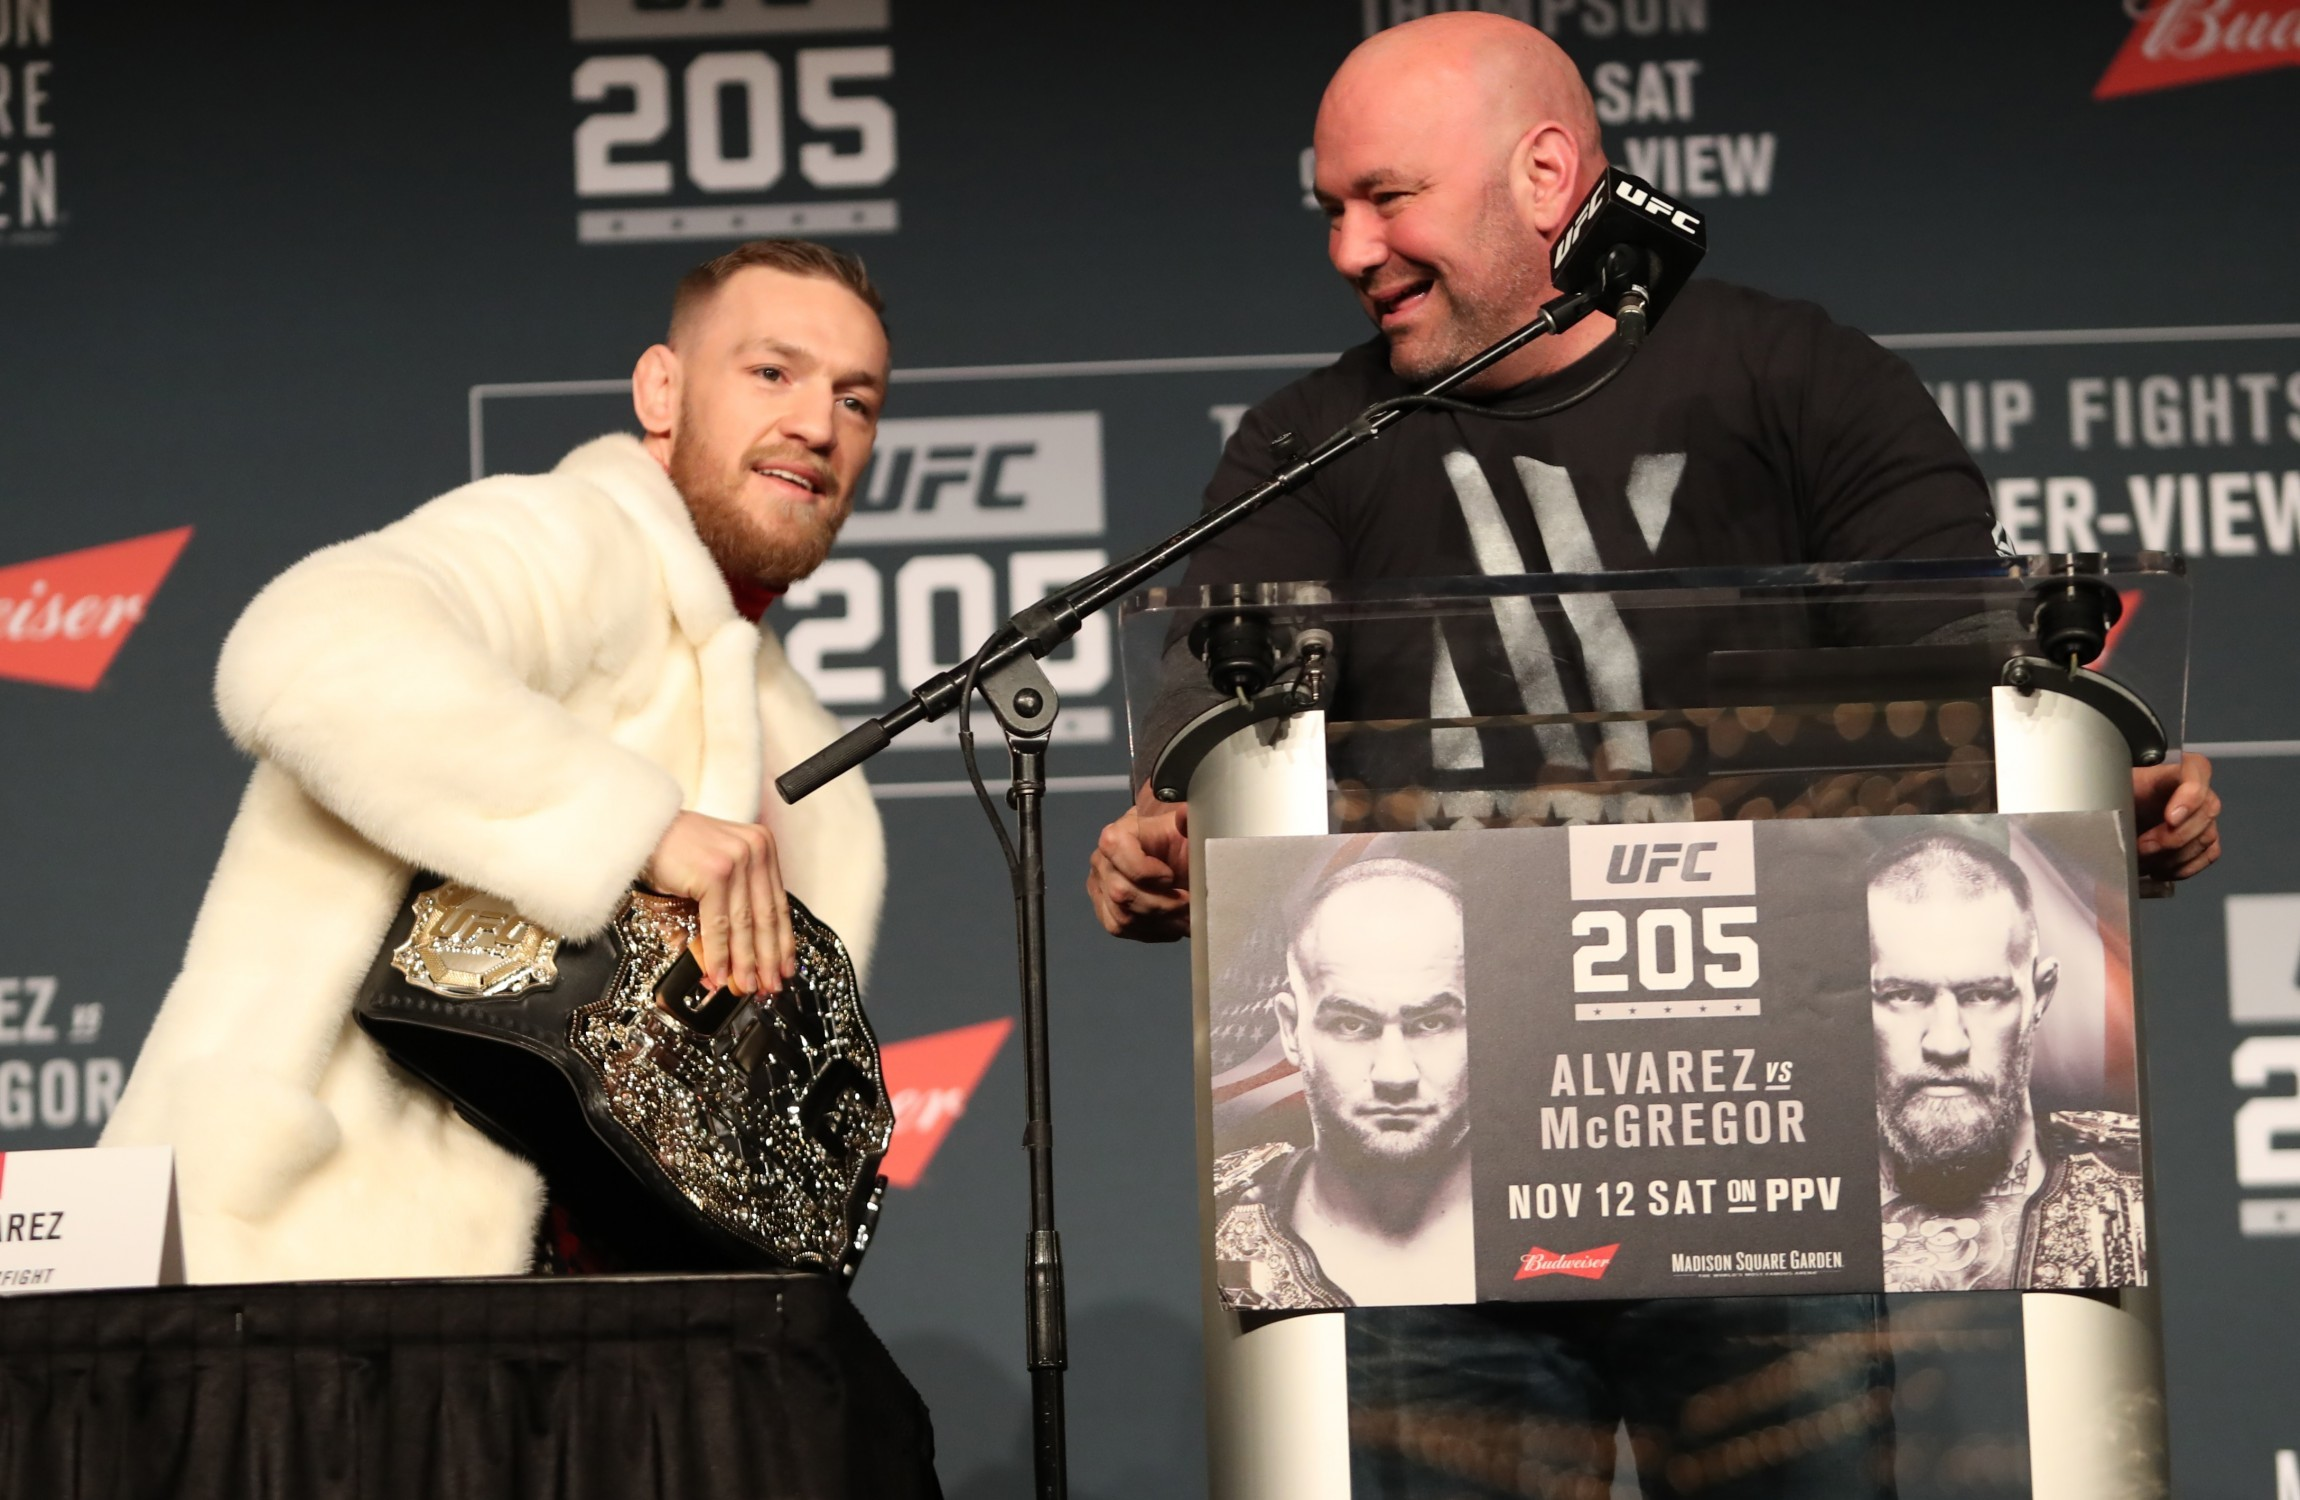 Floyd Mayweather vs. Conor McGregor: UFC's Dana White projects ginormous paydays